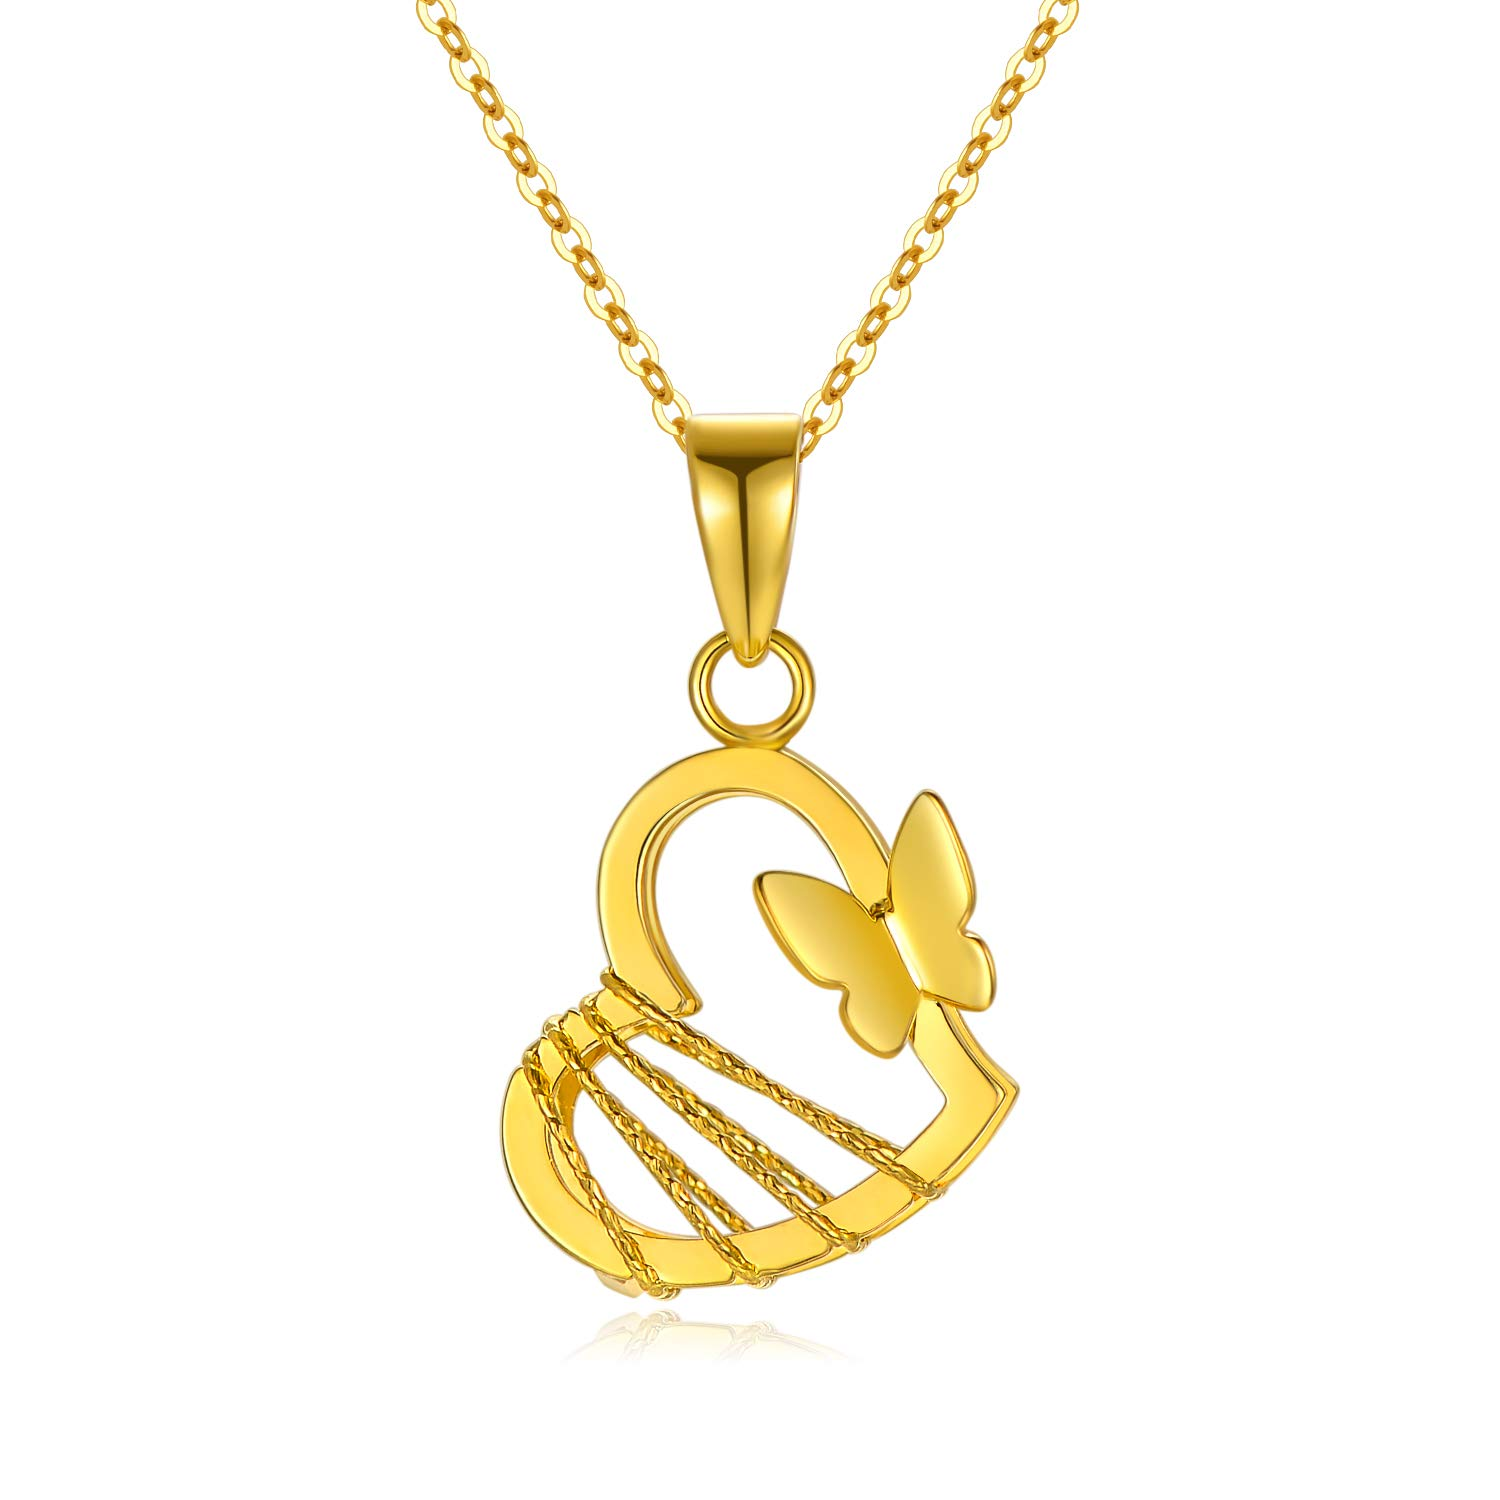 SISGEM 18k Yellow Gold Burtterfly Heart Necklace for Women, Real Gold Love Jewelry Gifts for Her, 18""